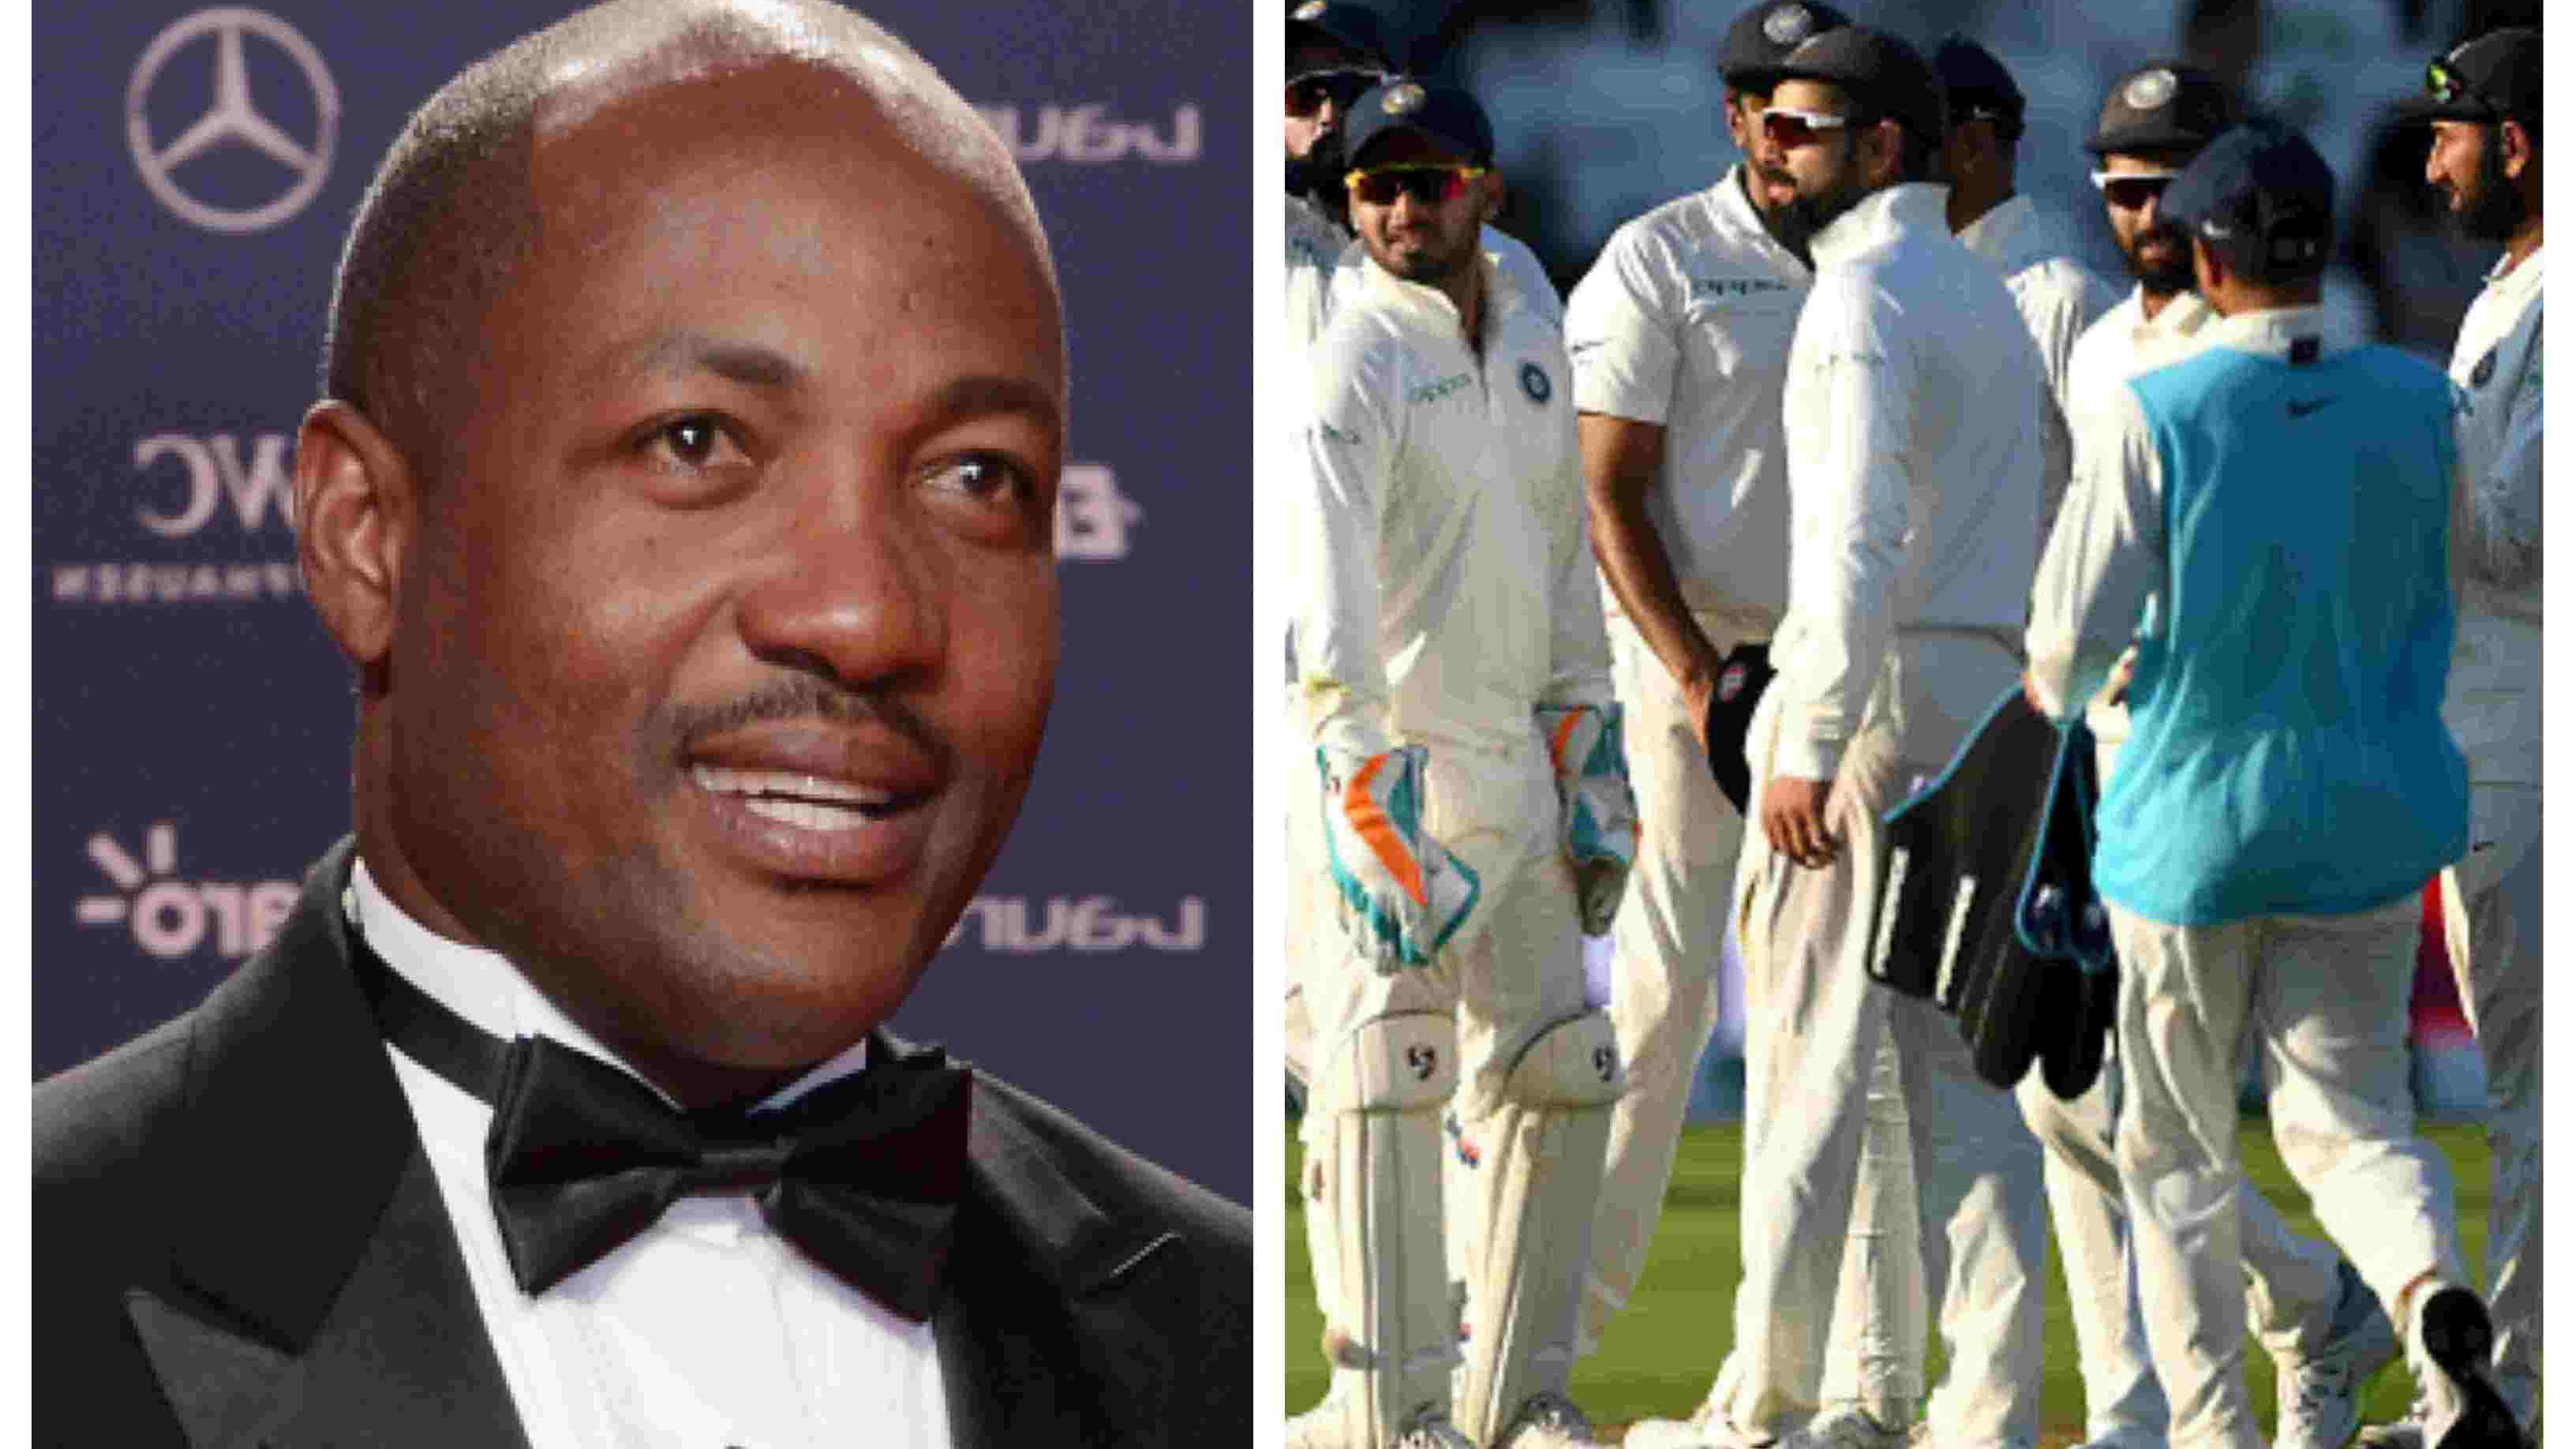 AUS v IND 2018-19: India can have an upper hand in Australia if they play their cards well, says Brian Lara